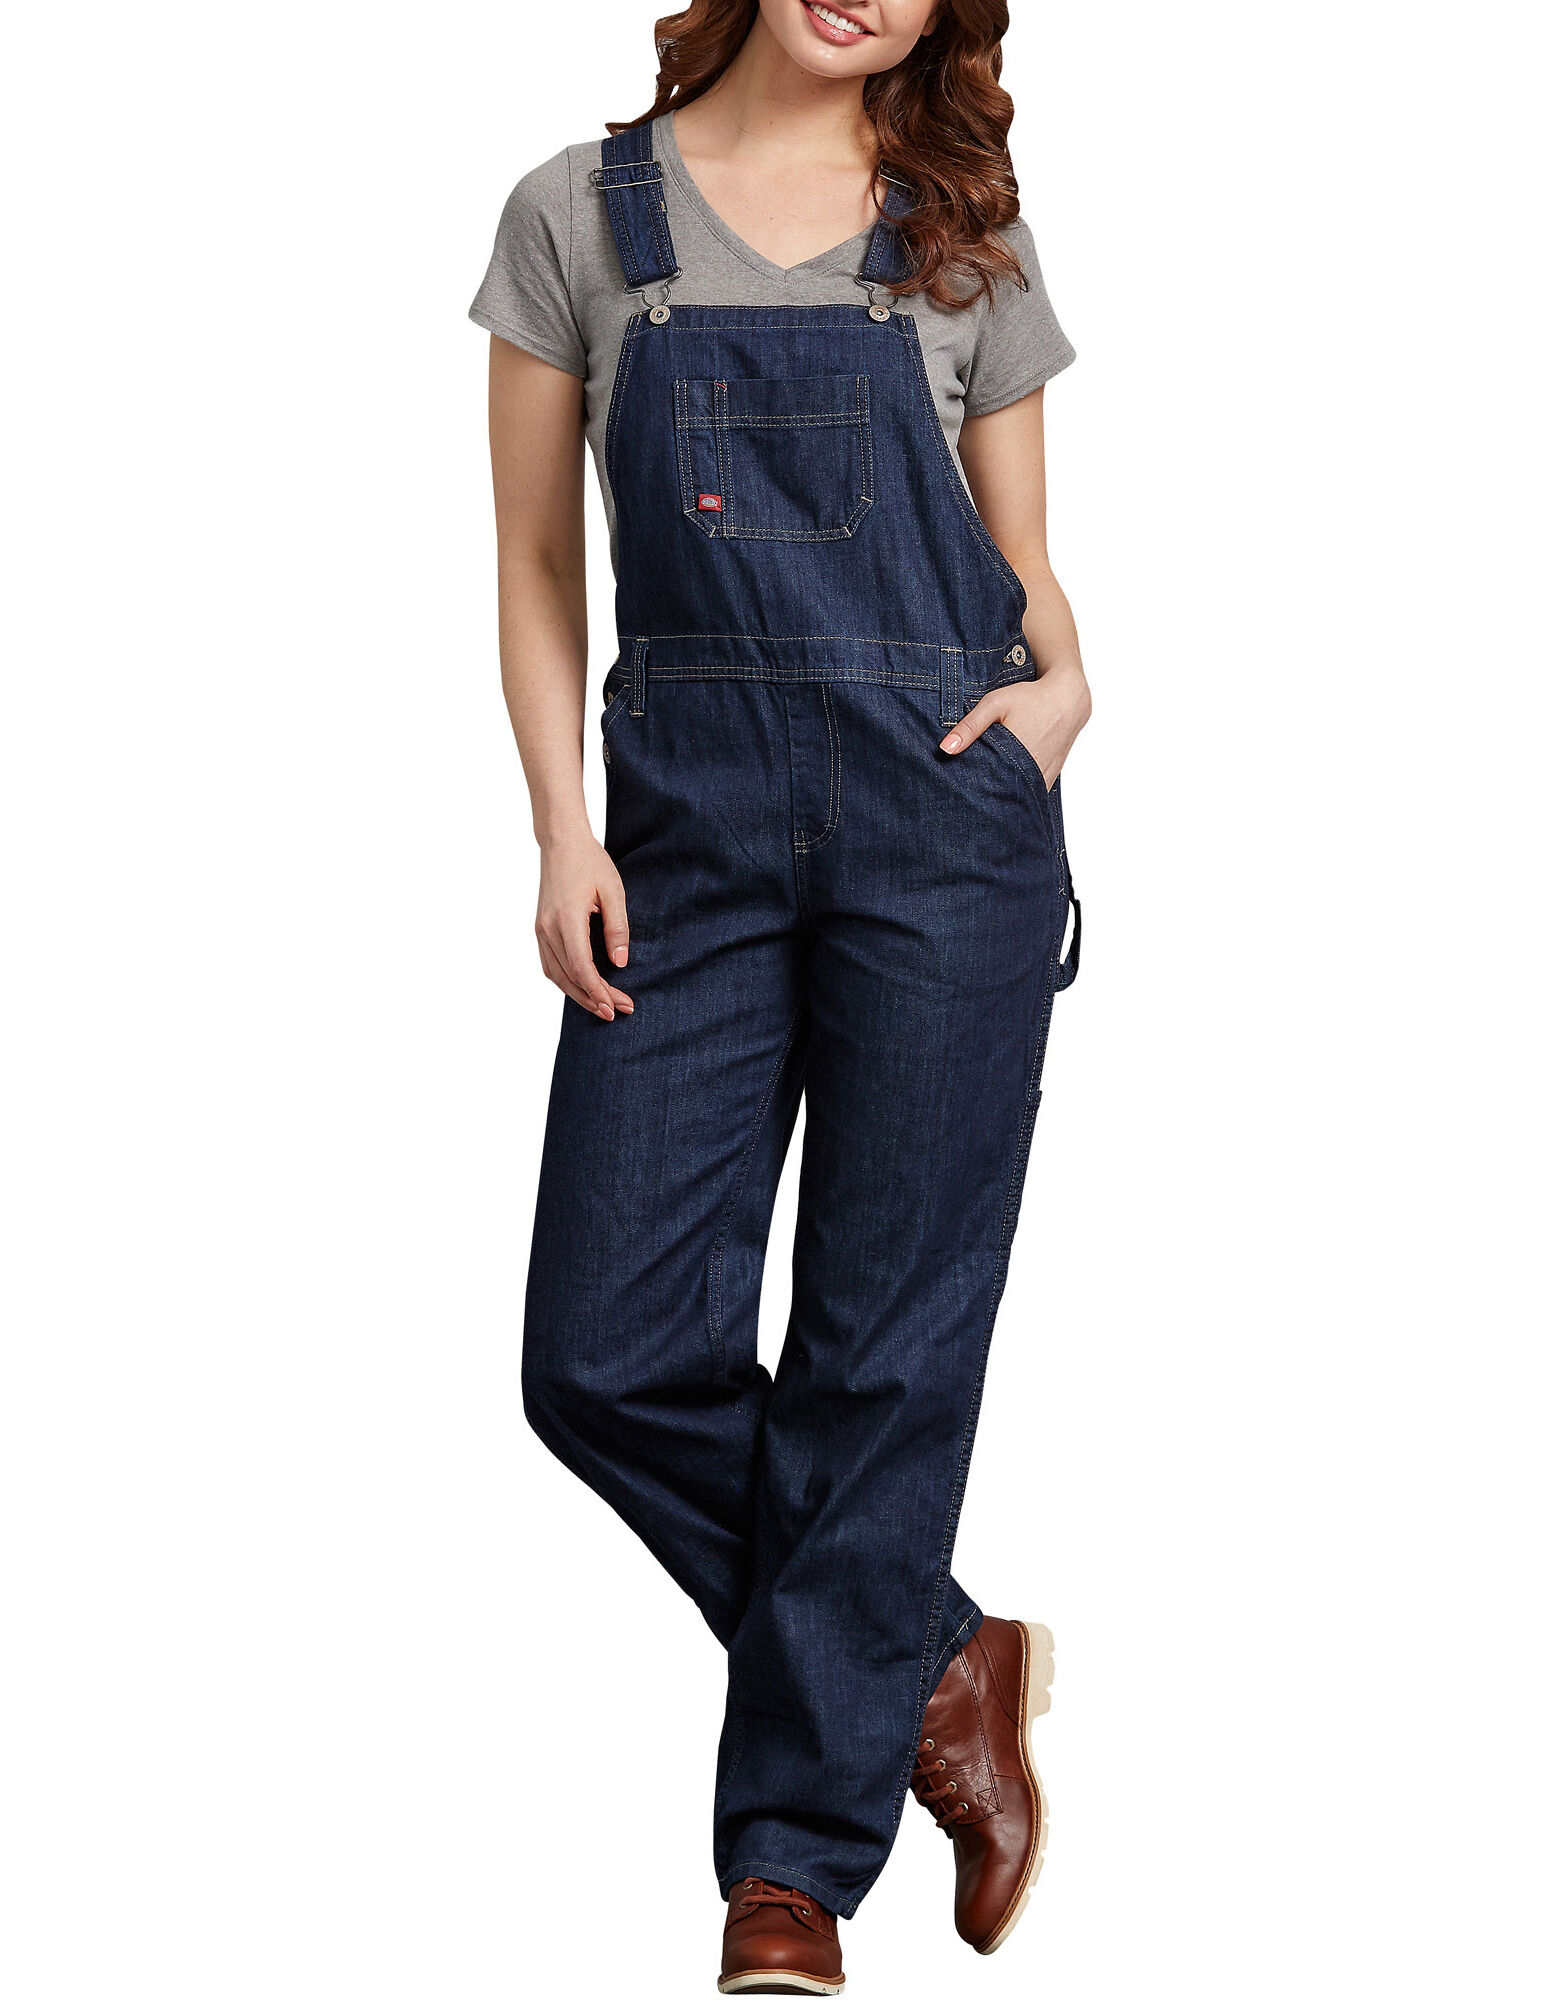 Womens Blue Jean Overalls